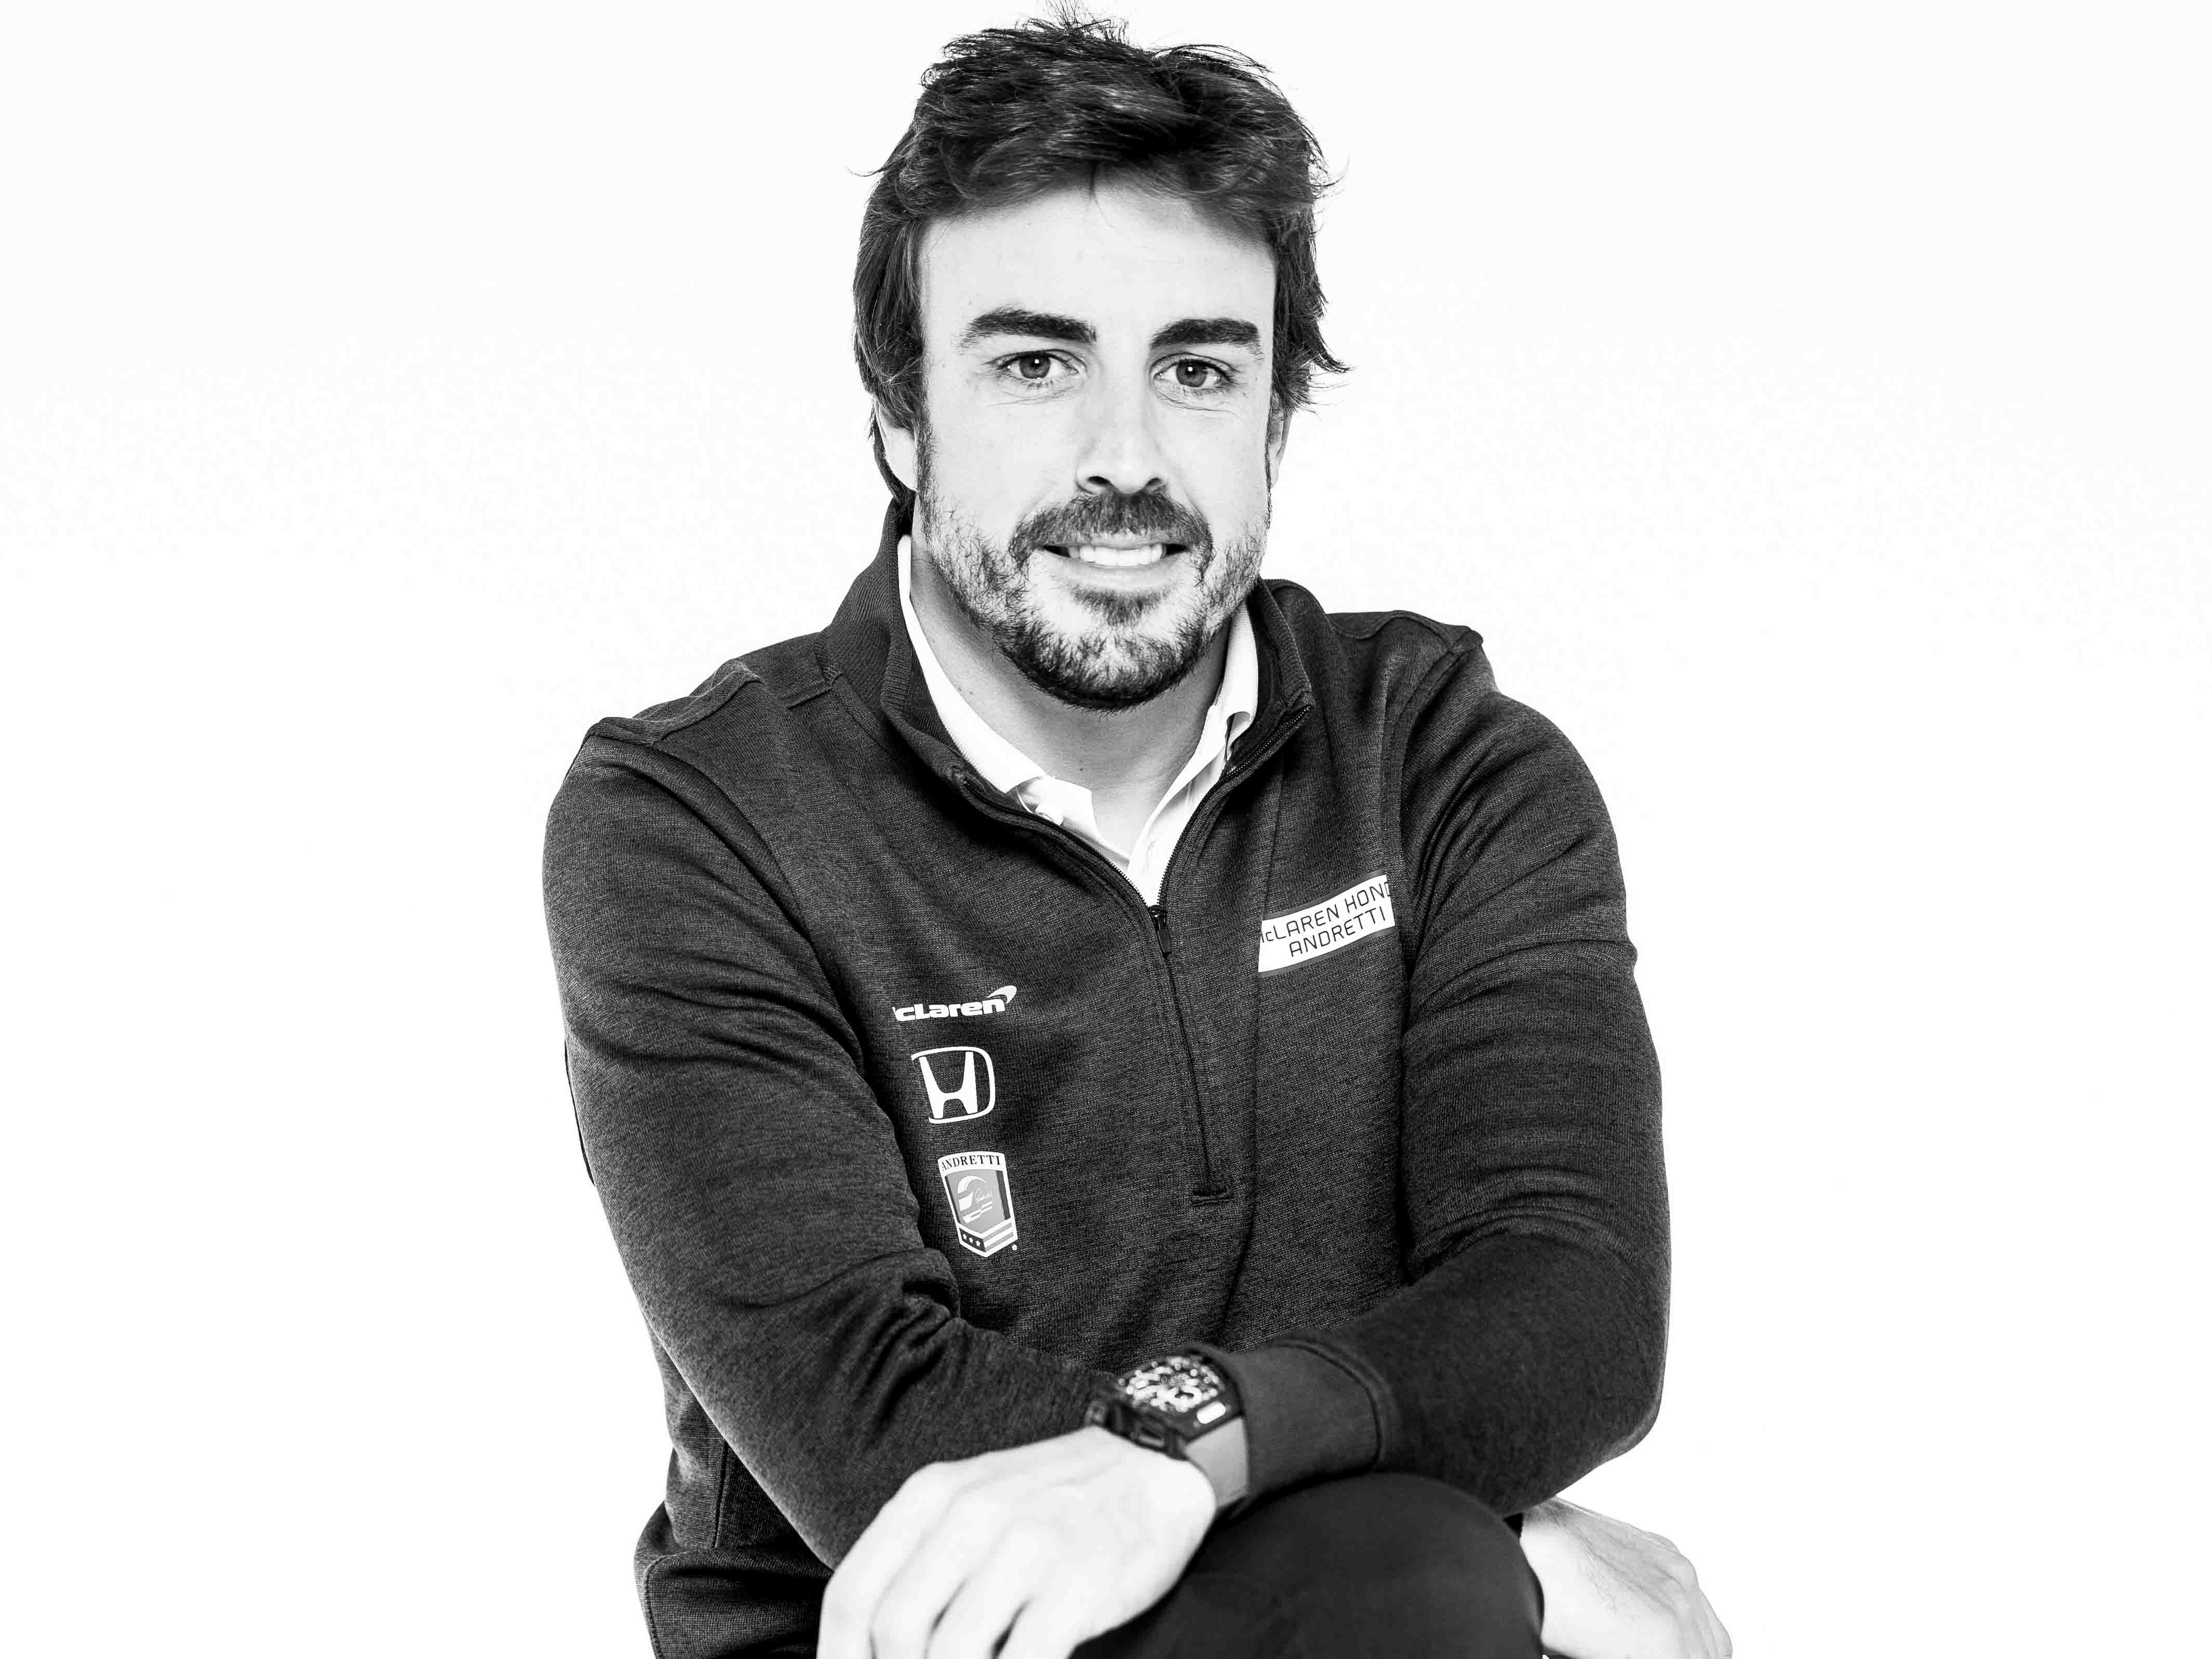 Formula One's Fernando Alonso gives Indy 500 a try | SI.com